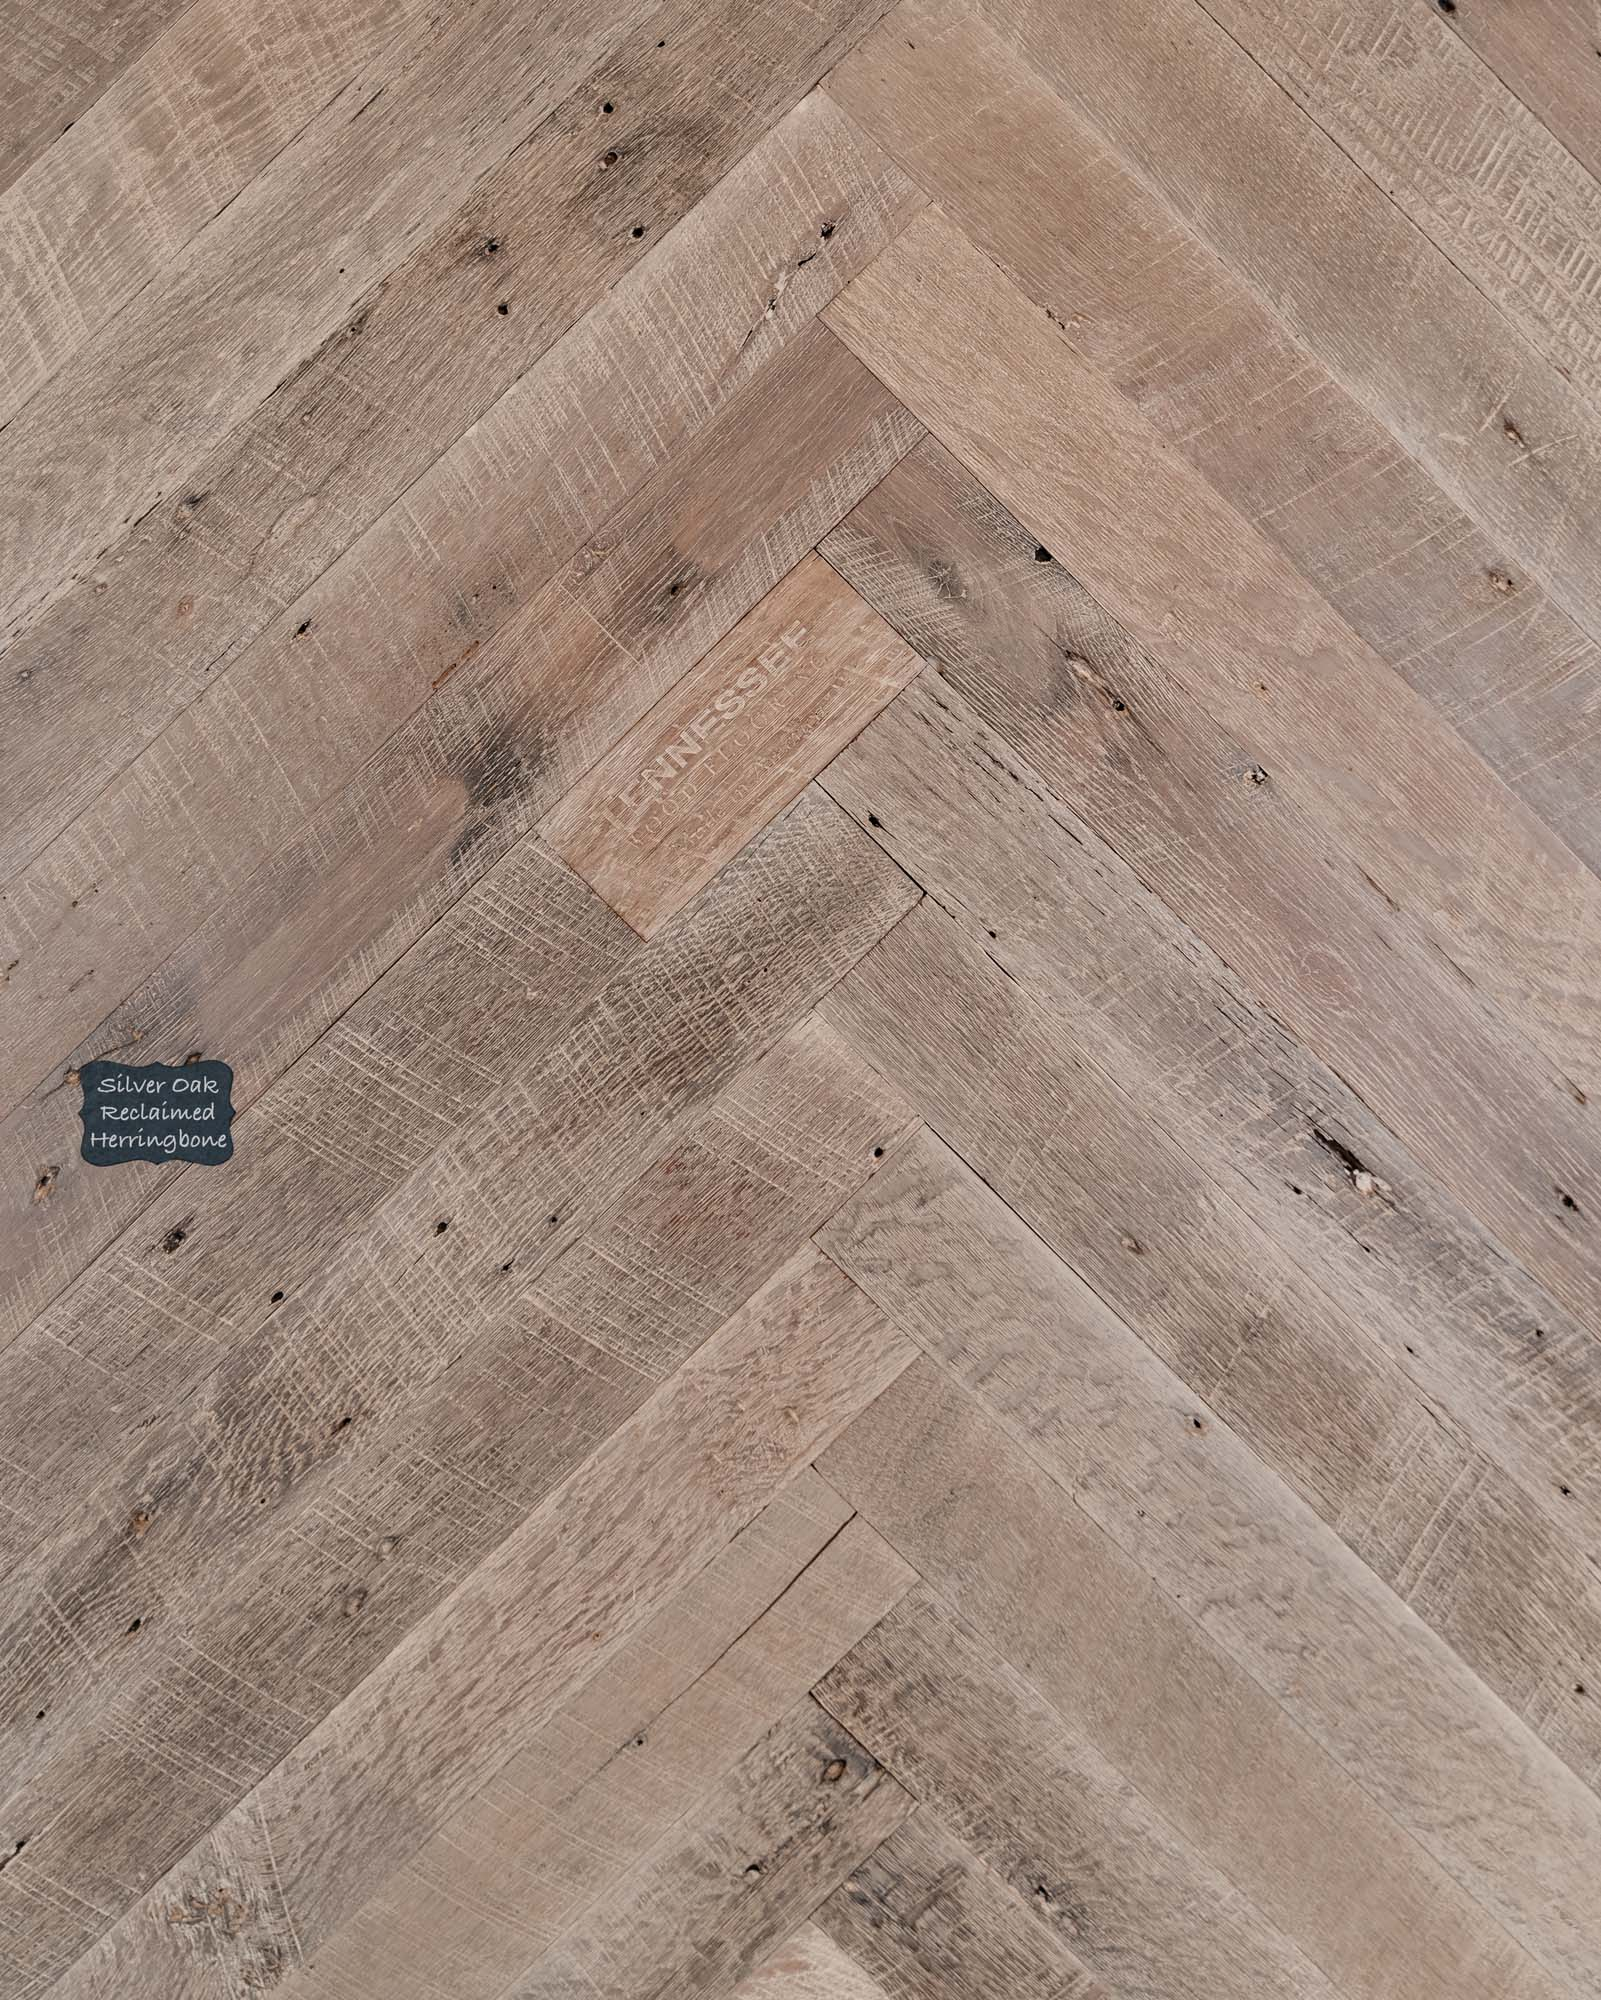 Silver Oak Barnside Herringbone Reclaimed Wood Flooring. Our Reclaimed lineup is our premium quality product line with a unique and classic look